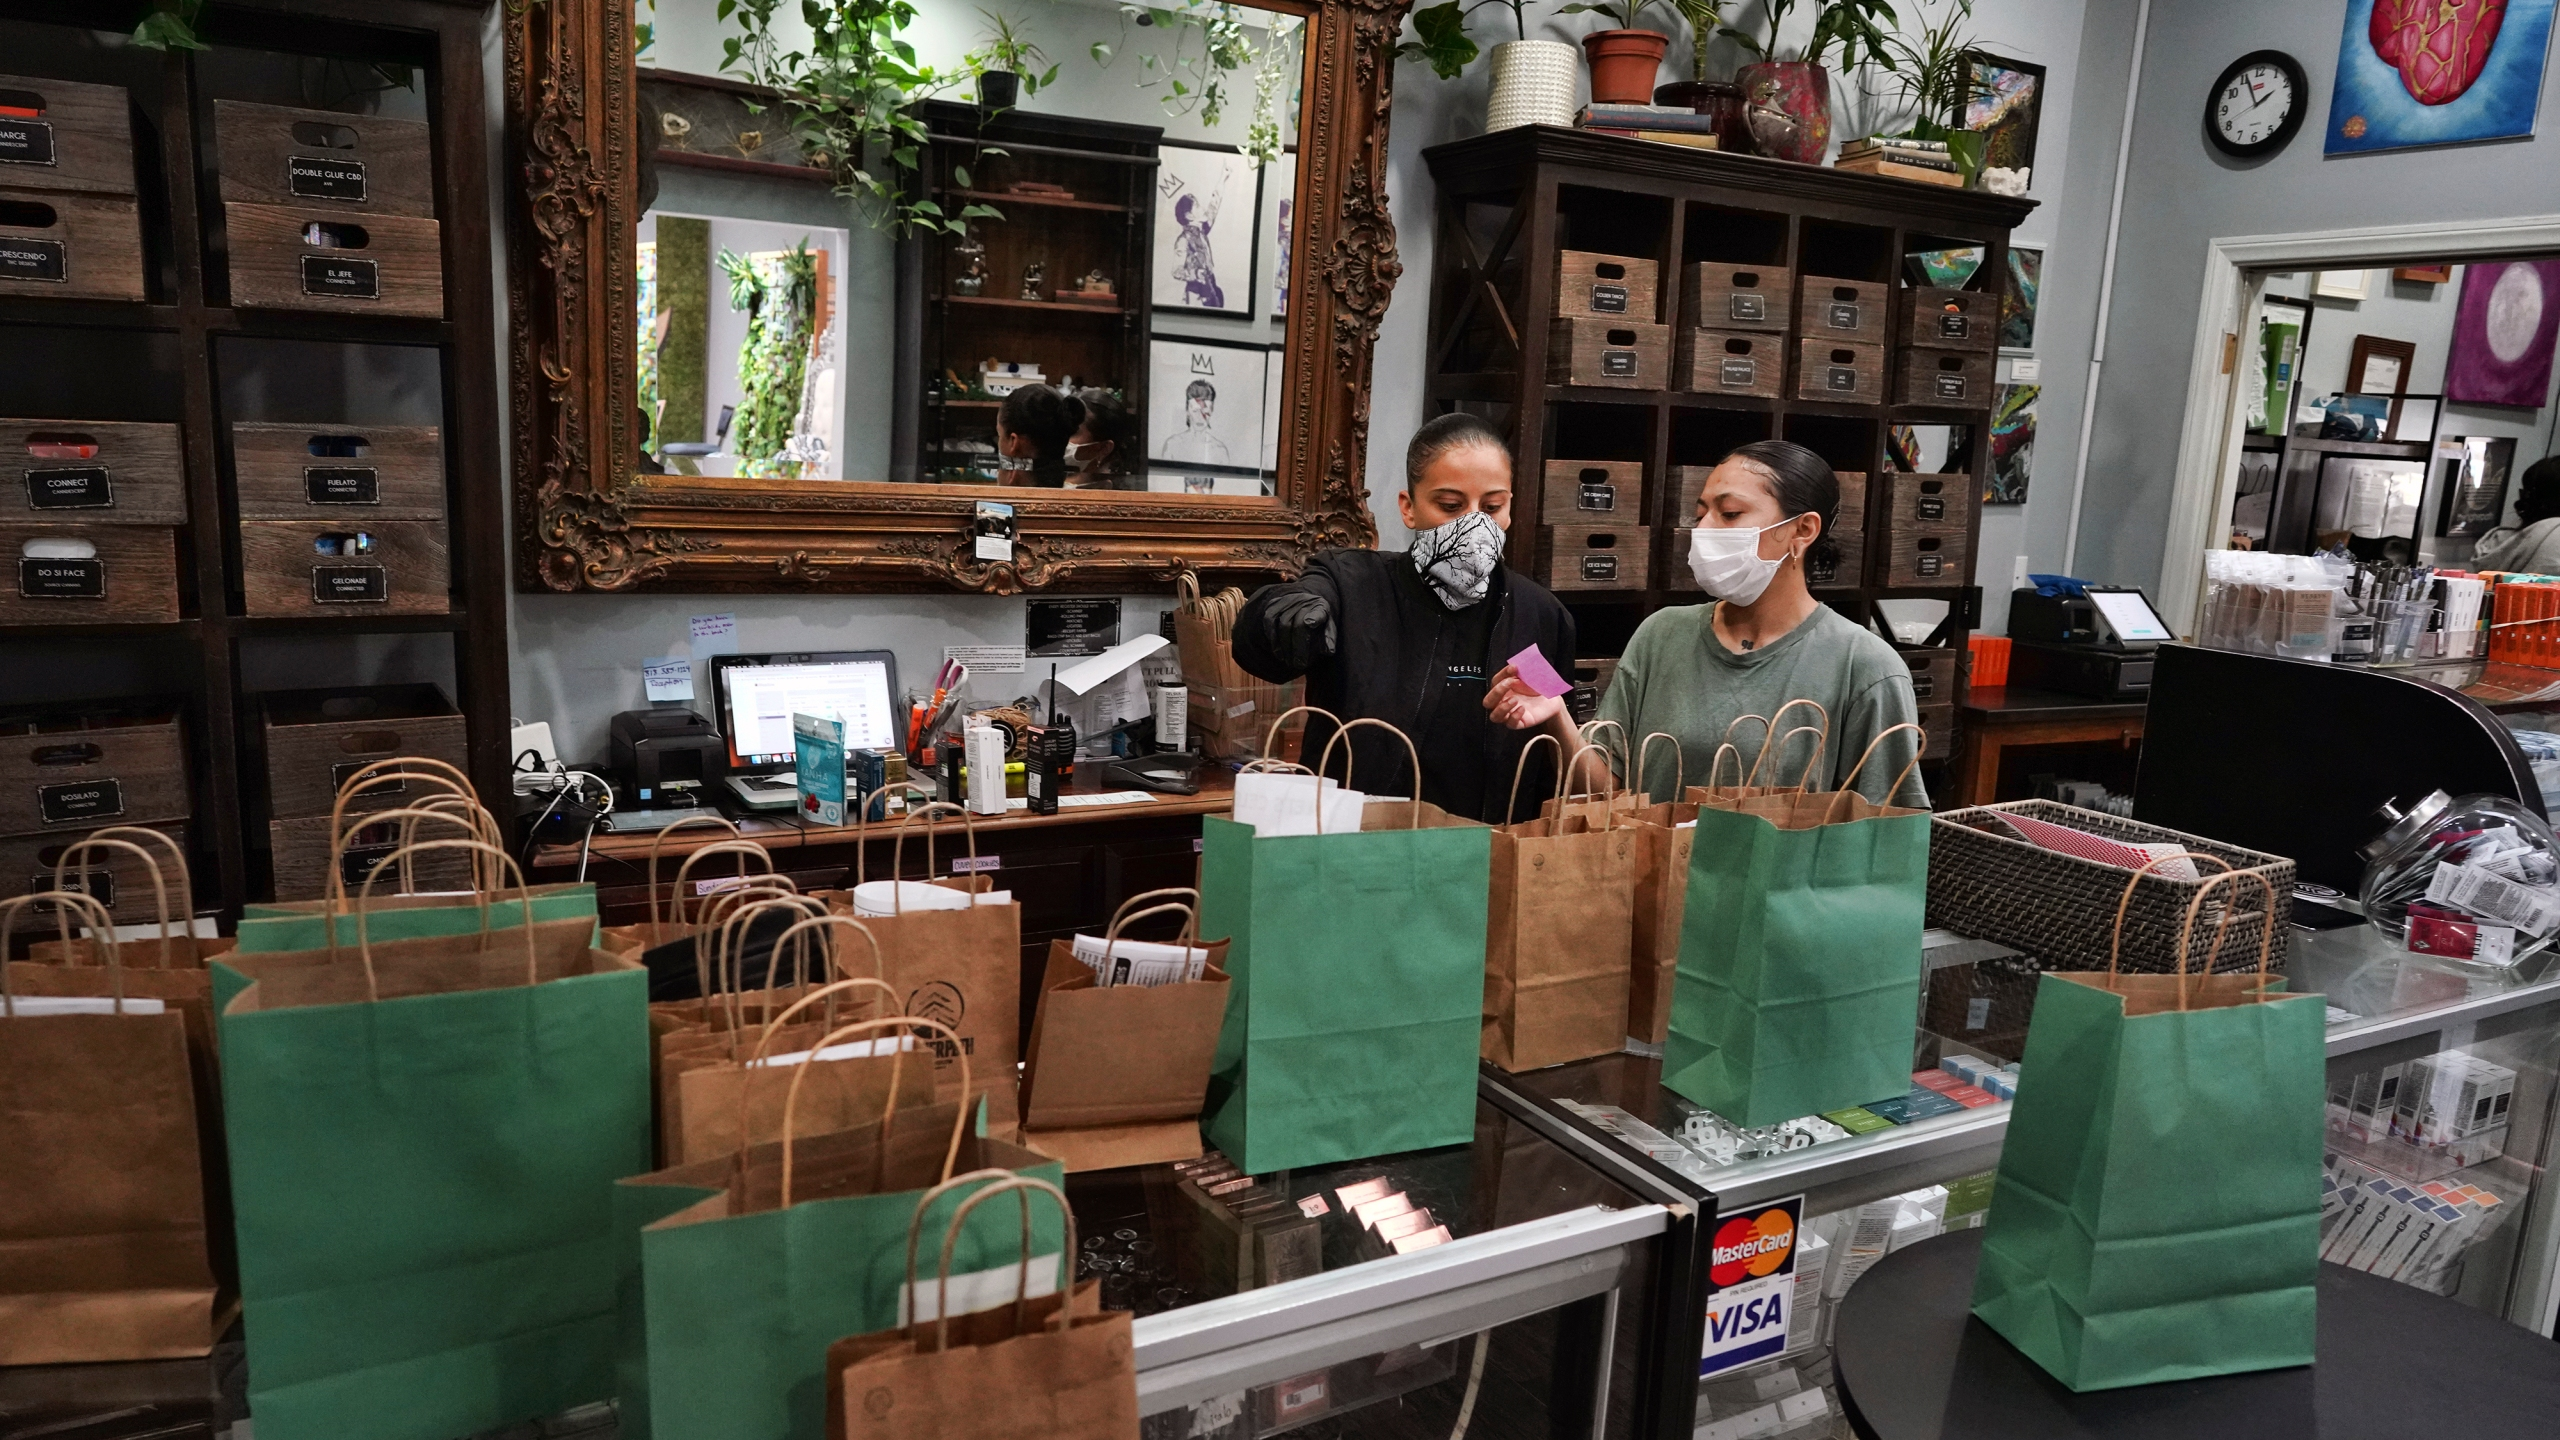 In this April 16, 2020, file photo, budtenders wearing protective masks prepare orders for customers to pick up at the Higher Path cannabis dispensary in the Sherman Oaks. (AP Photo/Richard Vogel, File)